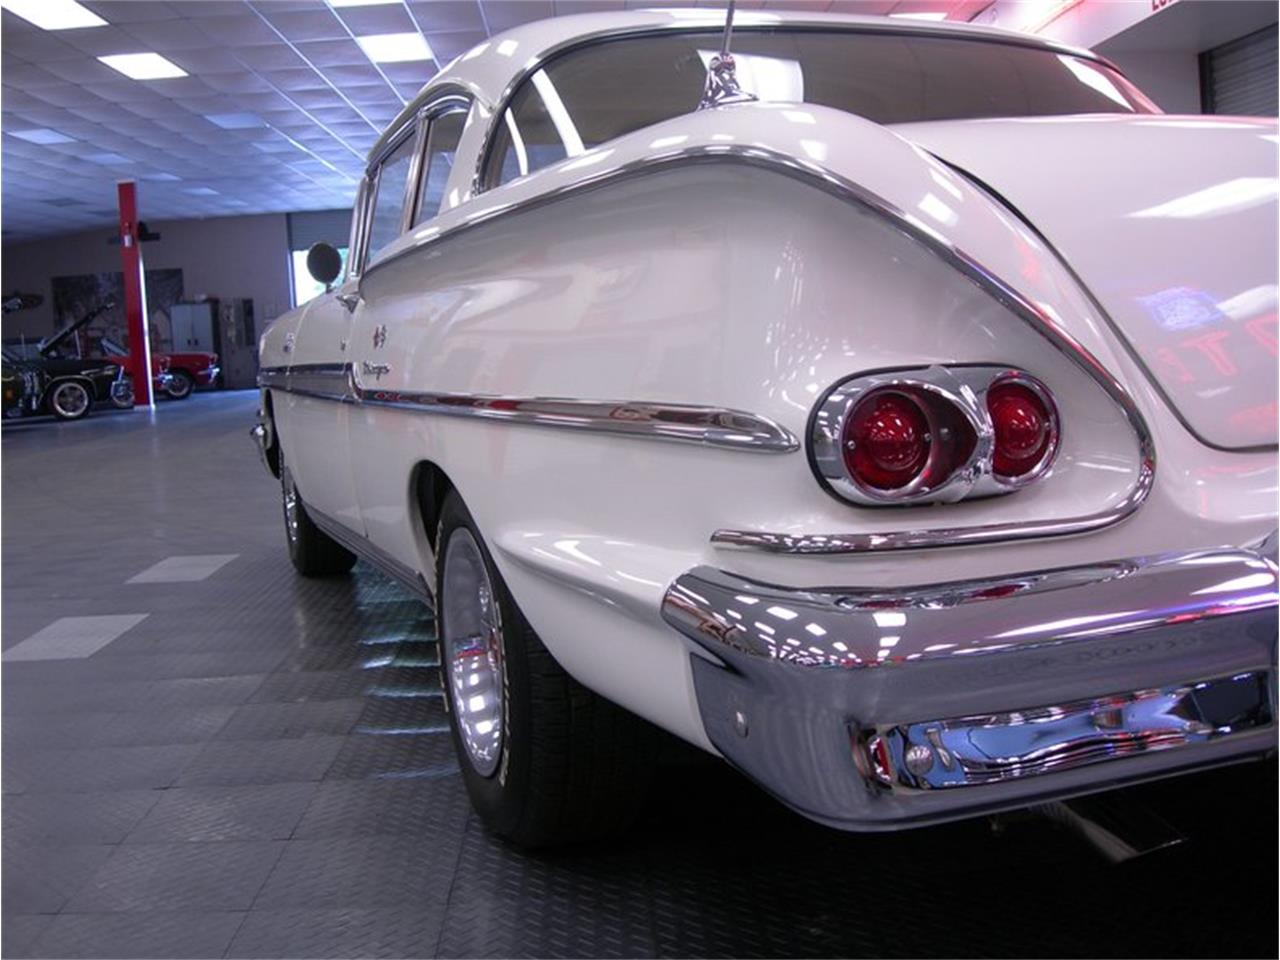 1958 Chevrolet Biscayne for sale in Dothan, AL – photo 25